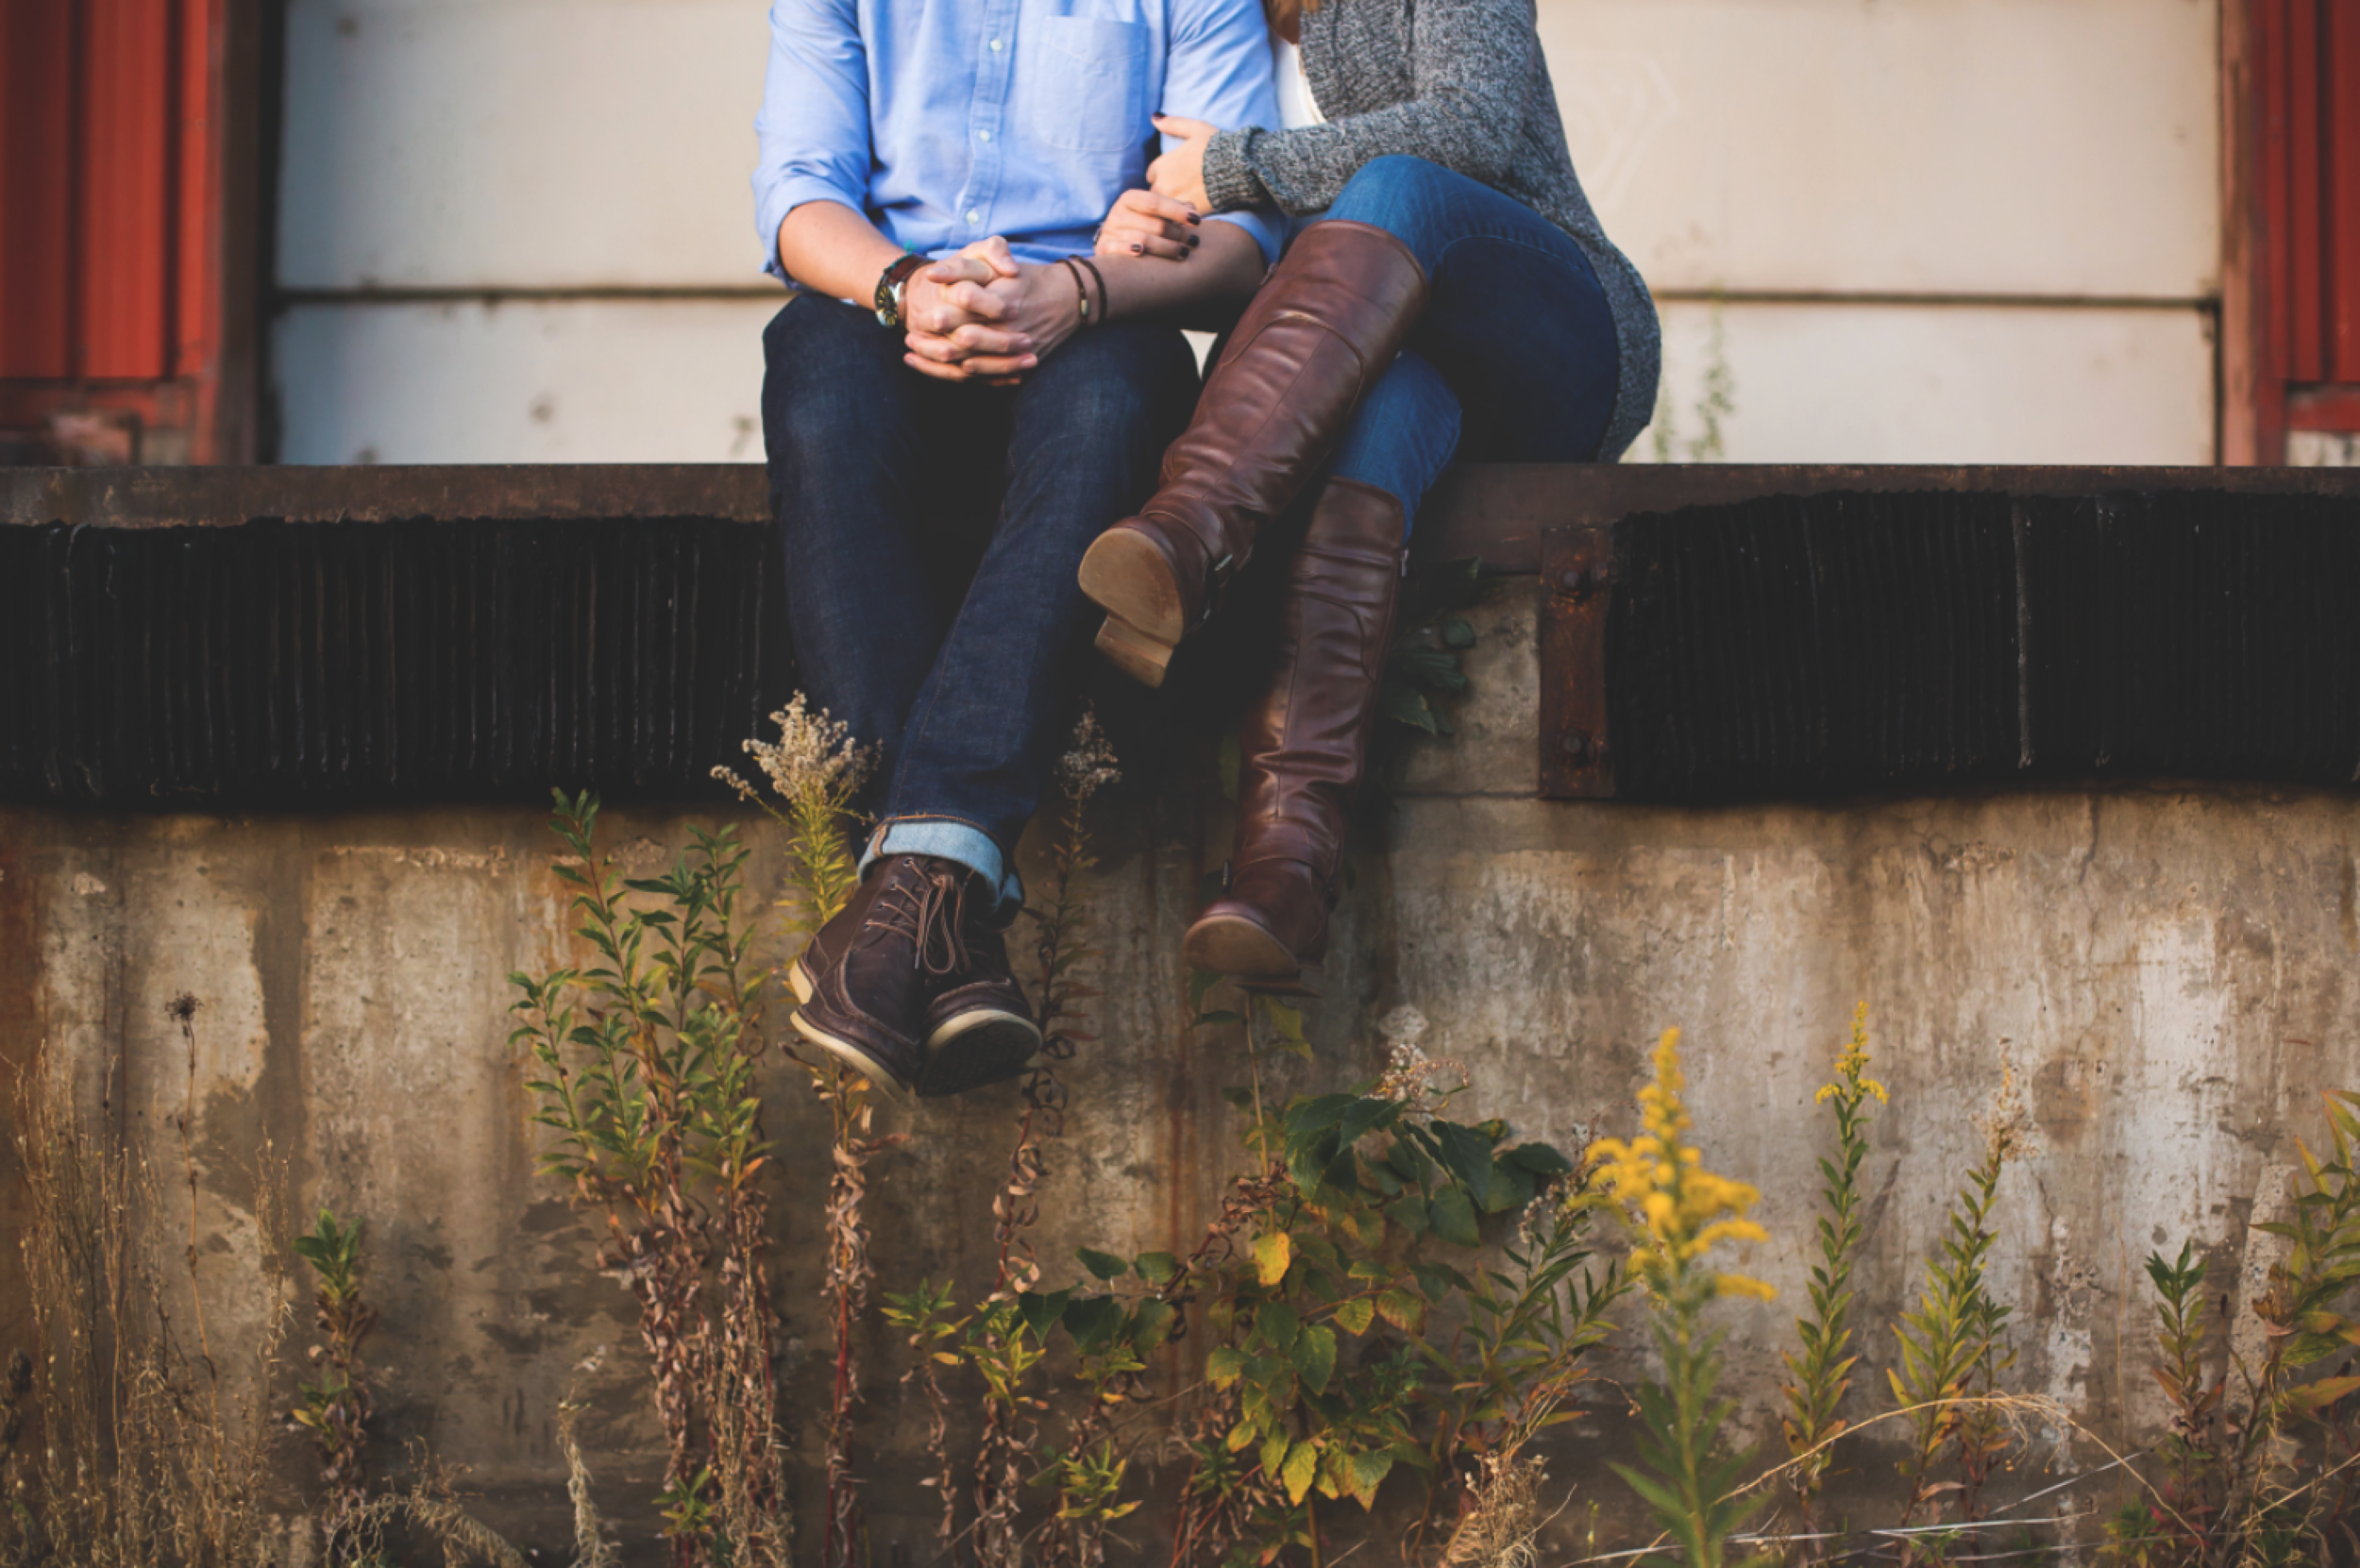 Engagement-Session-Downtown-Hamilton-Burlington-Oakville-Niagara-Toronto-Wedding-Photographer-Engaged-Photography-Waterfront-Urban-HamOnt-Engaged-Golden-Hour-Moments-by-Lauren-Photo-Image-8.png